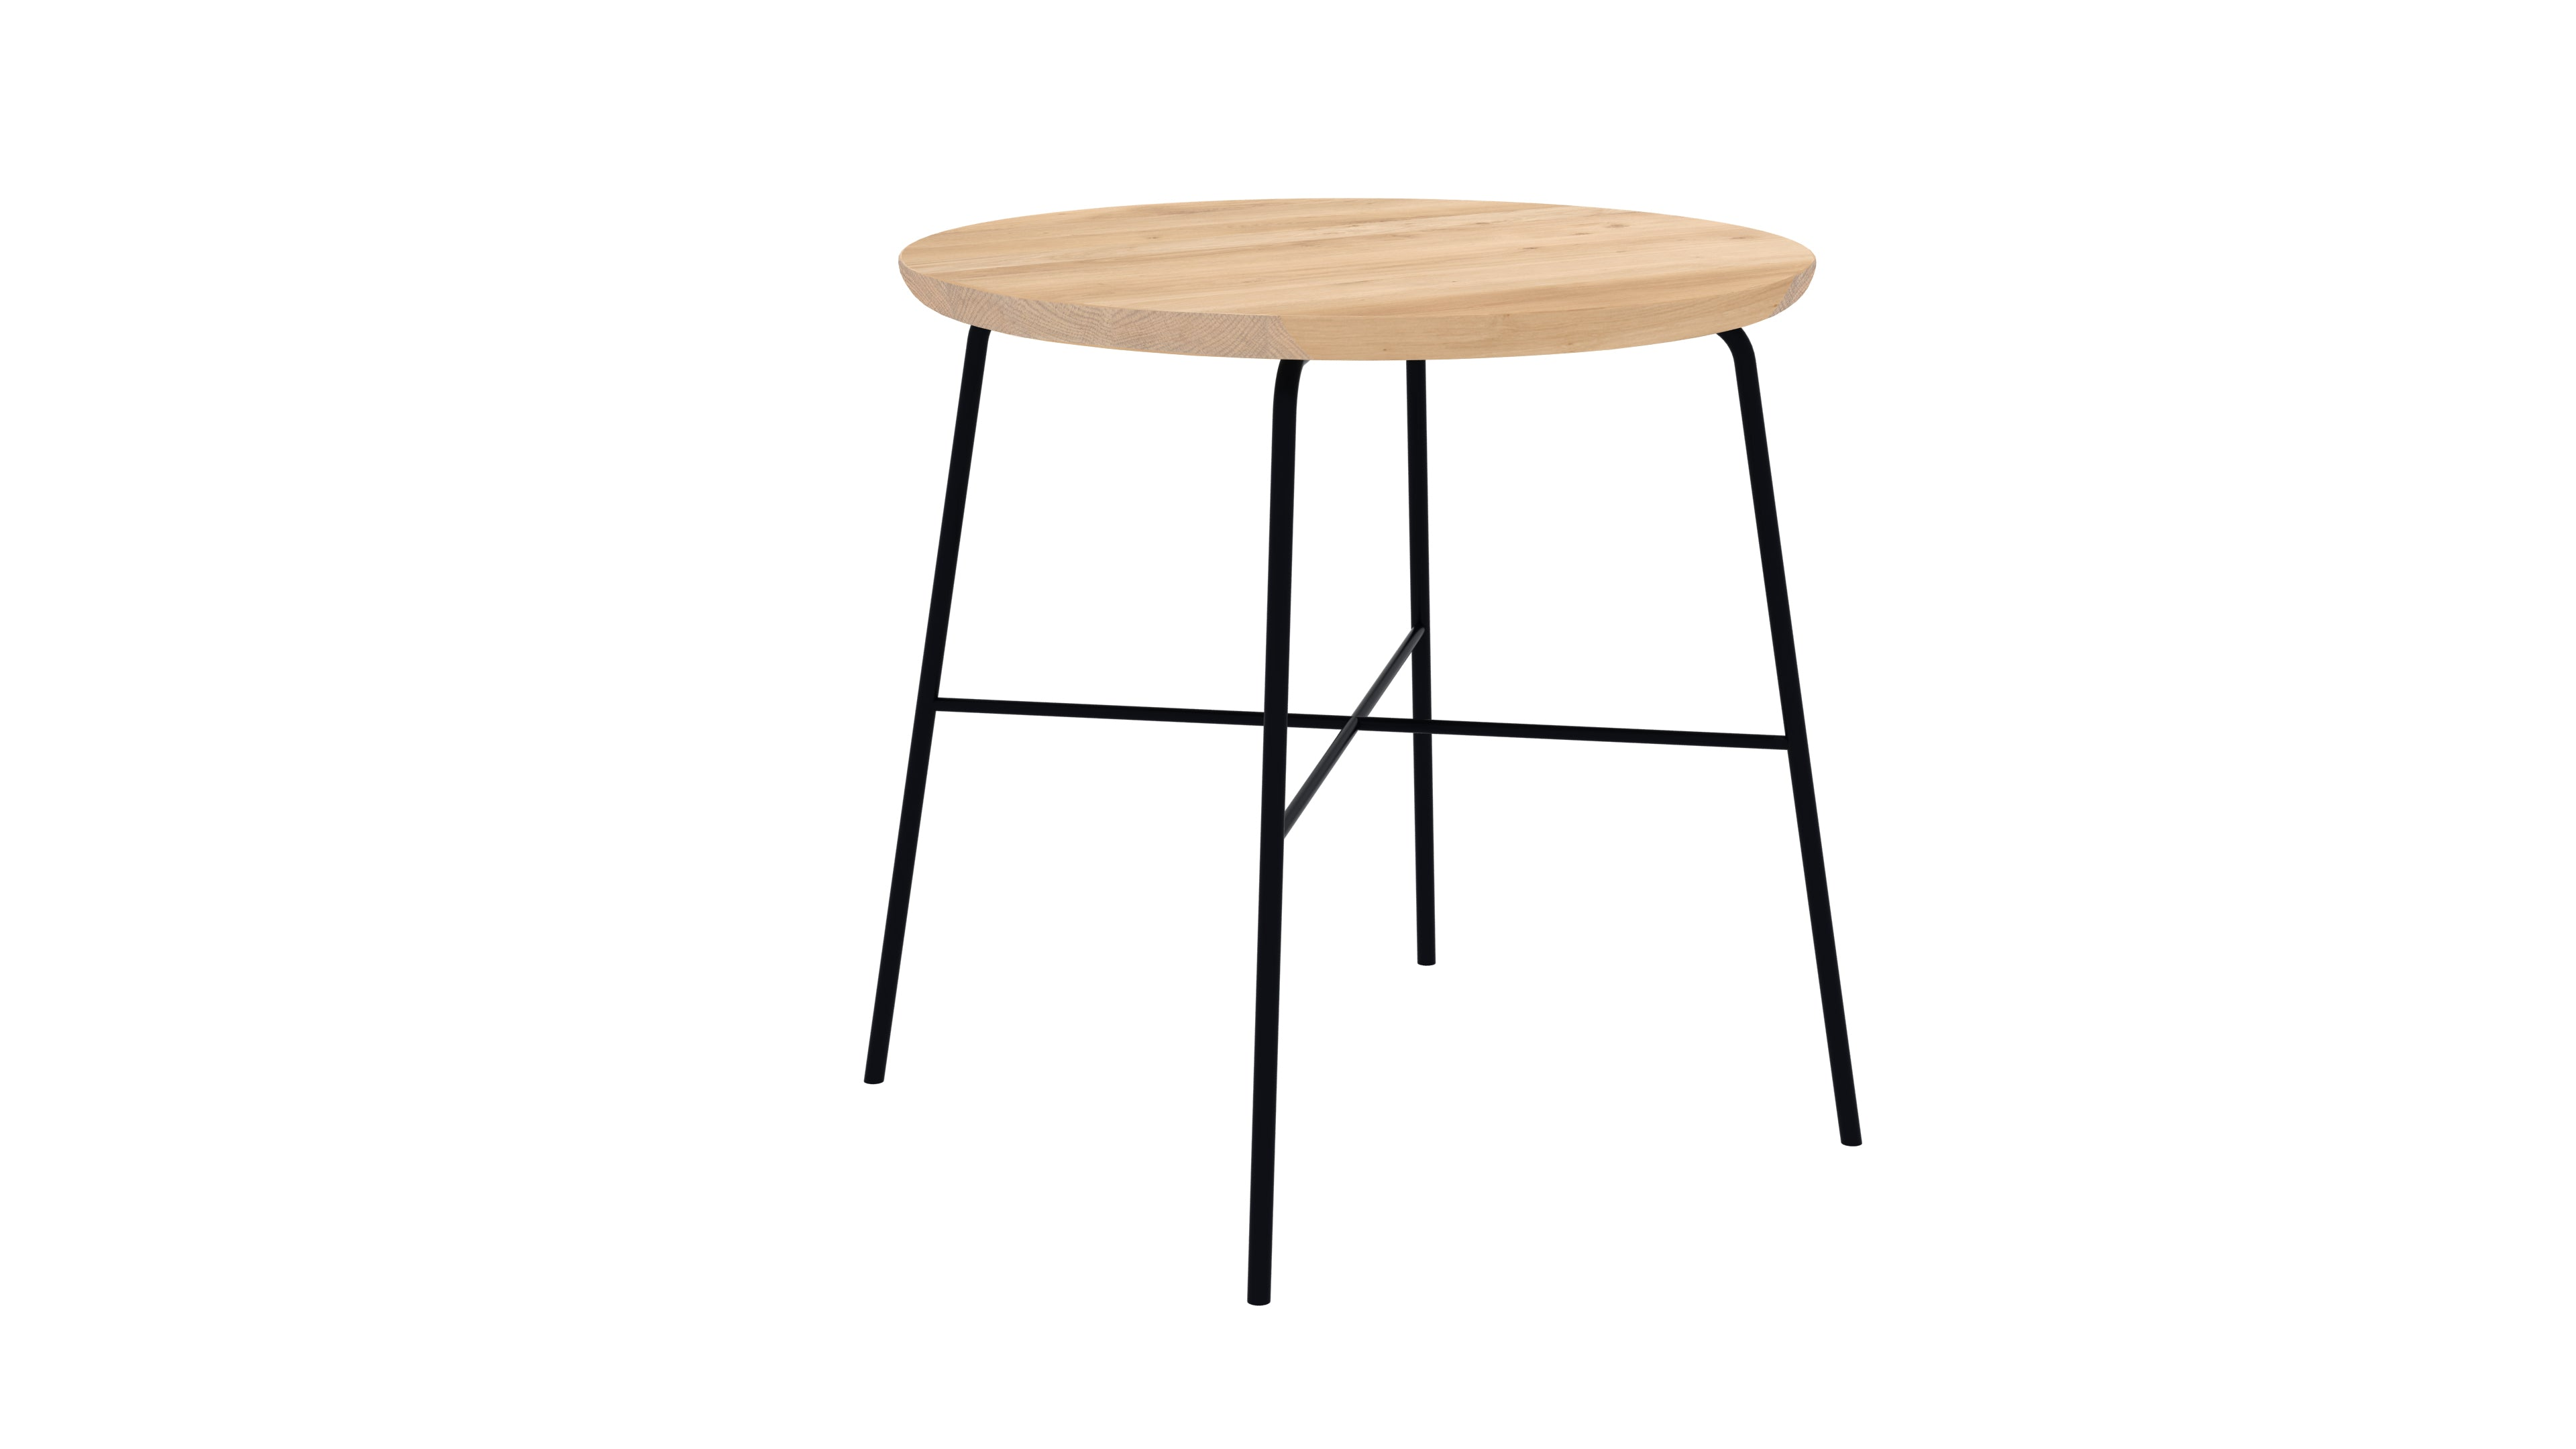 Table d'appoint Disc Chêne massif - Ethnicraft